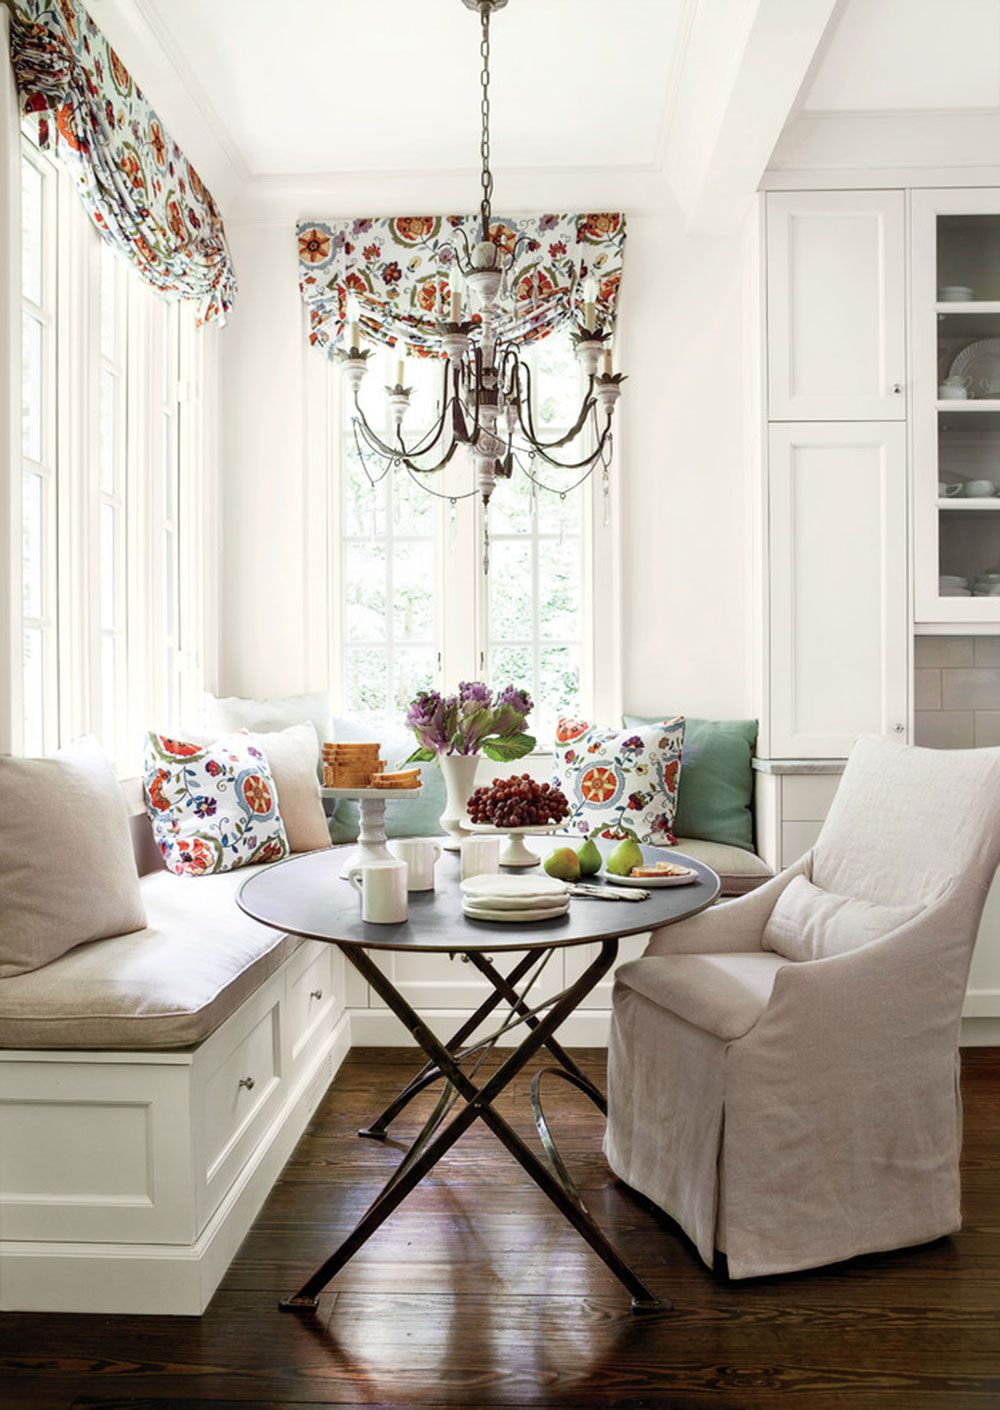 Window nook ideas  breakfast nook design ideas for awesome mornings  window kitchens